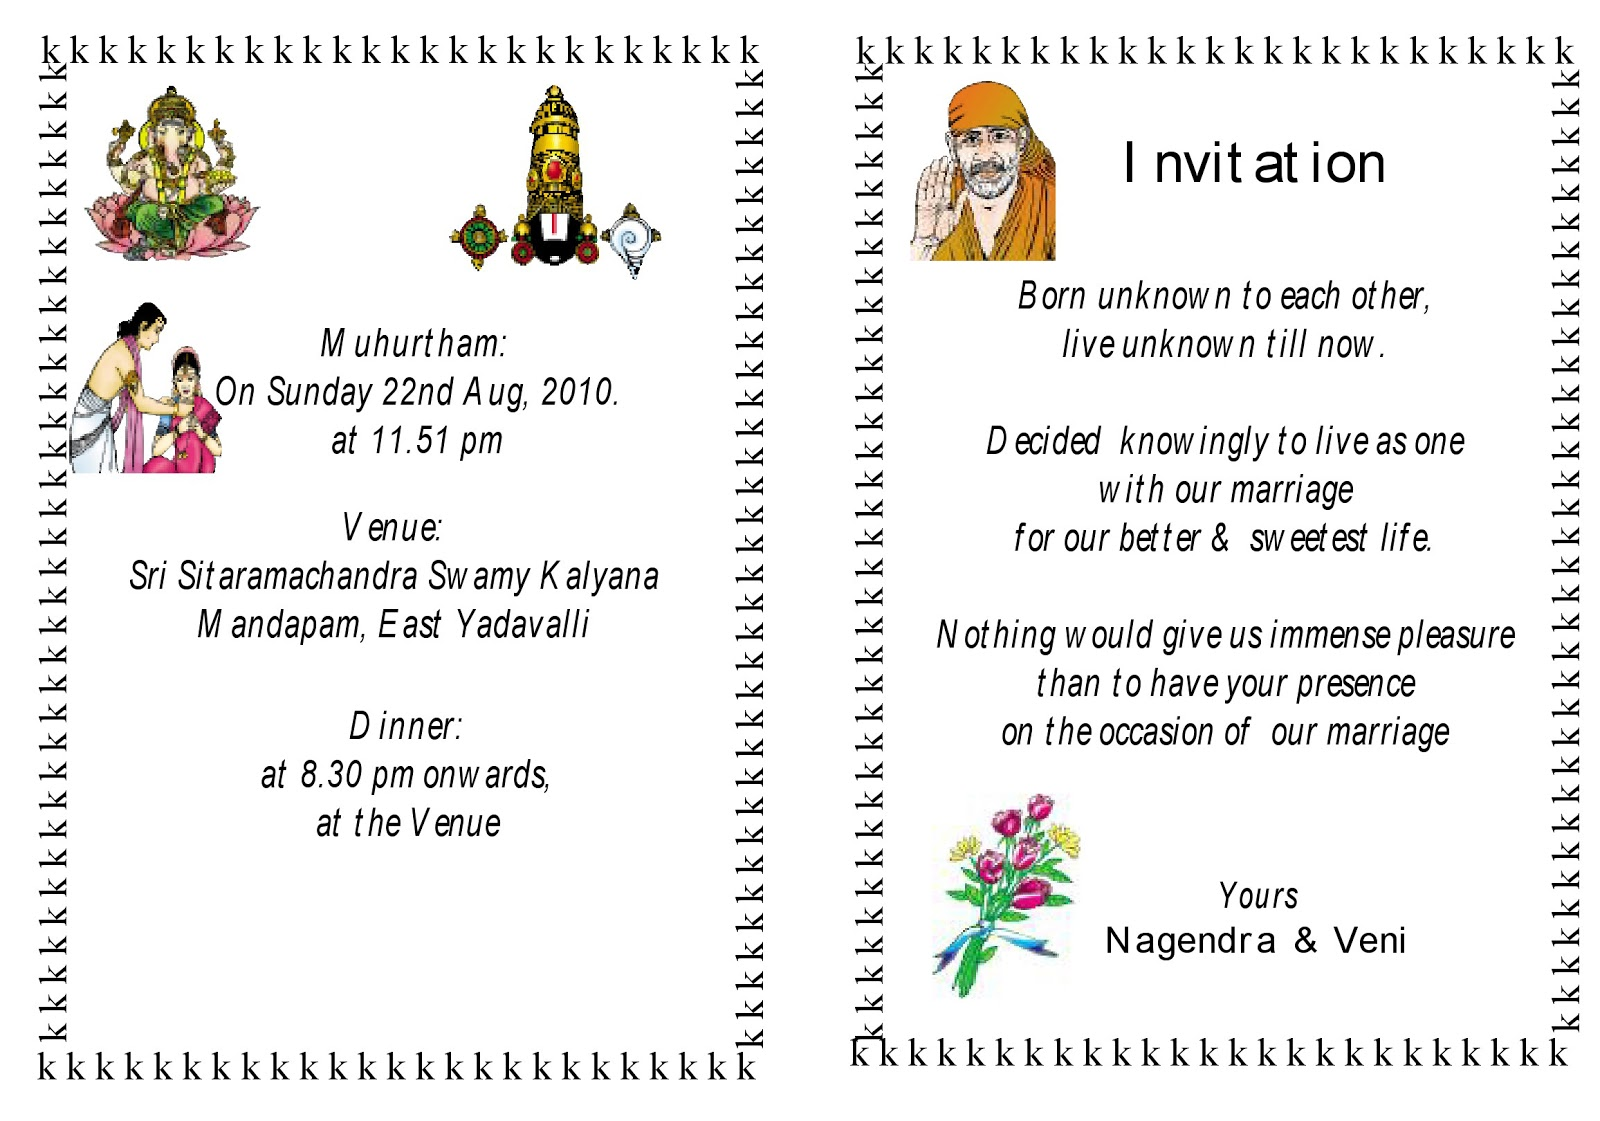 Quotes For Invitation Cards Wedding – Quotes for Invitation Cards